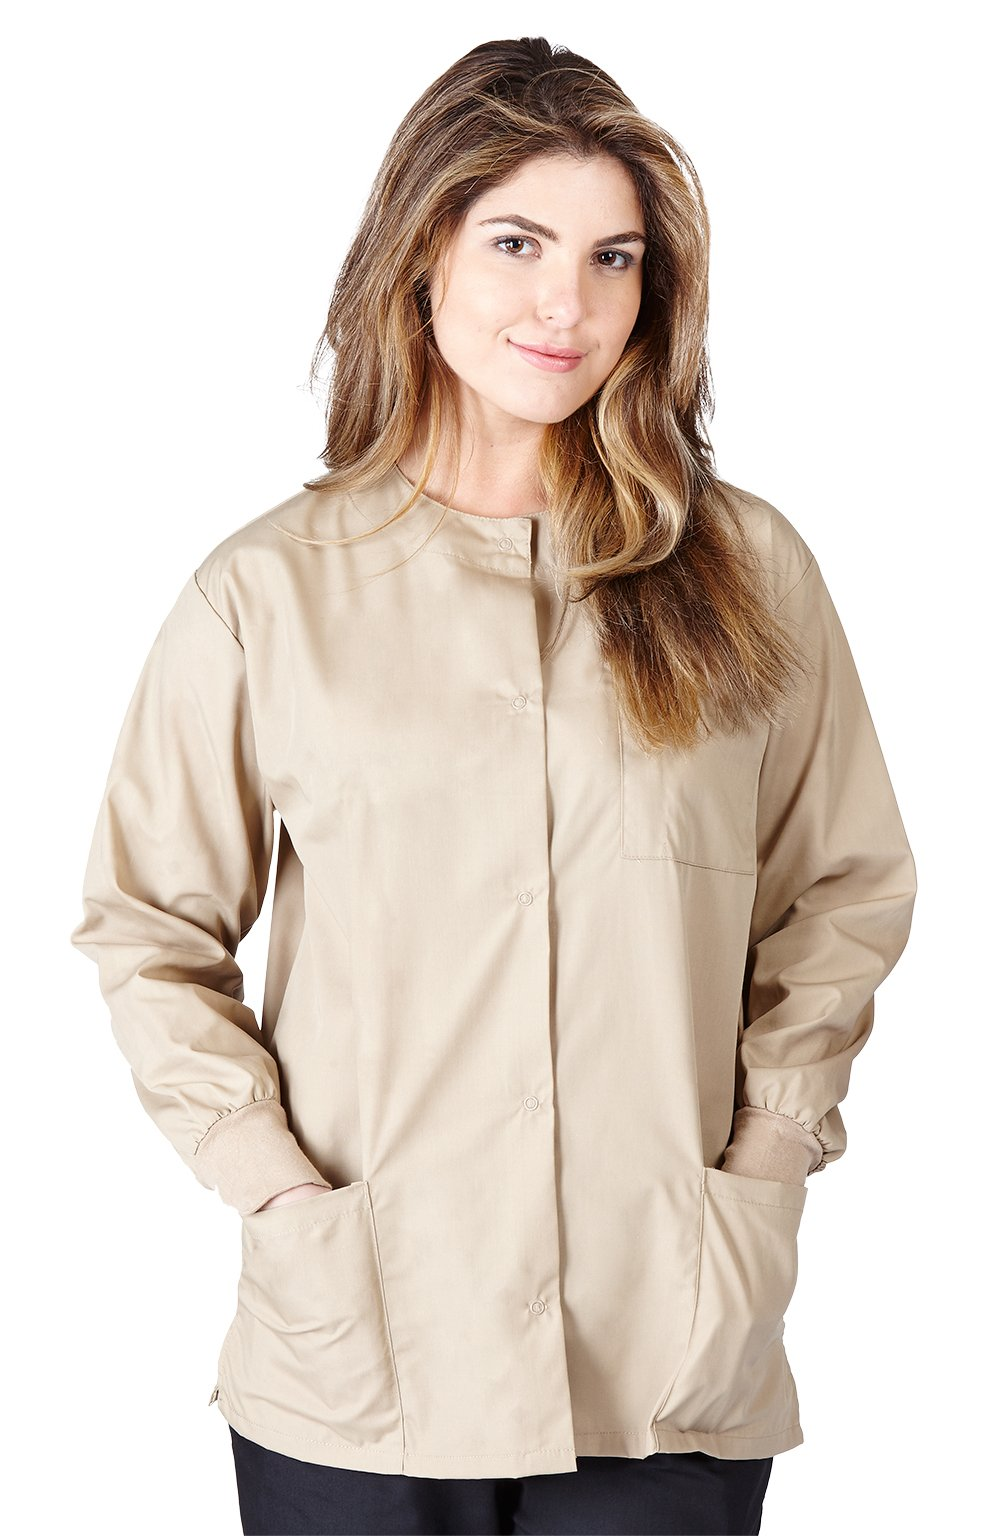 Natural Uniforms Women's Warm Up Jacket (Khaki) (Large) (Plus Sizes Available)